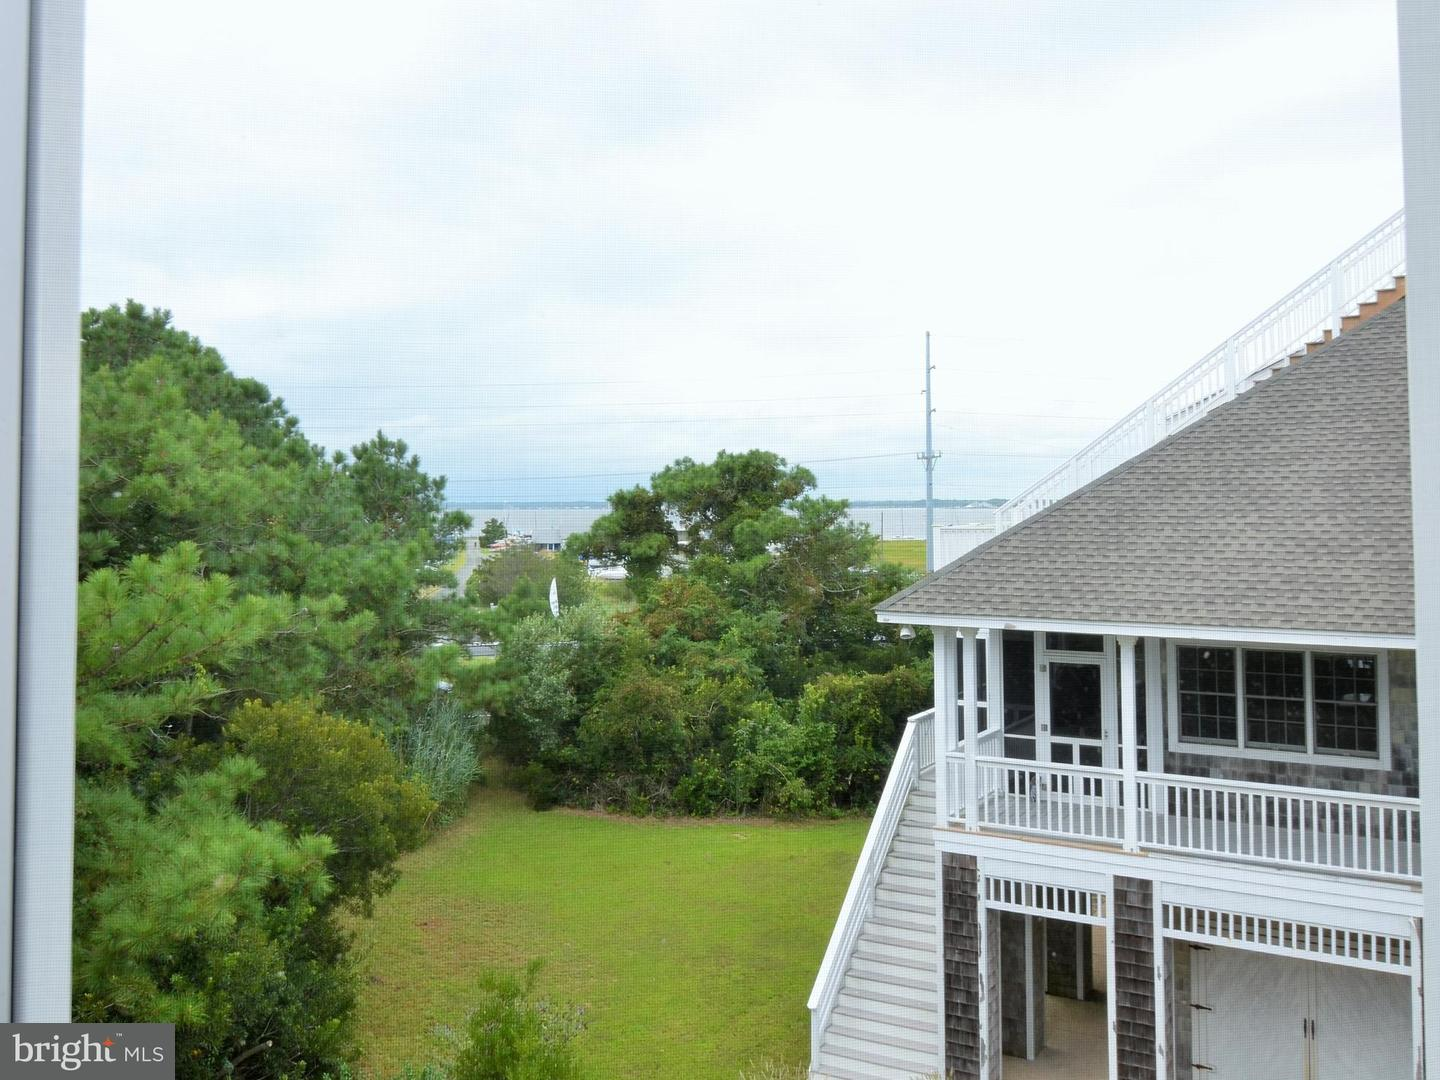 1002293530-300500810132-2018-09-25-15-08-25 31 Hall Ave | Rehoboth Beach, De Real Estate For Sale | MLS# 1002293530  - Suzanne Macnab